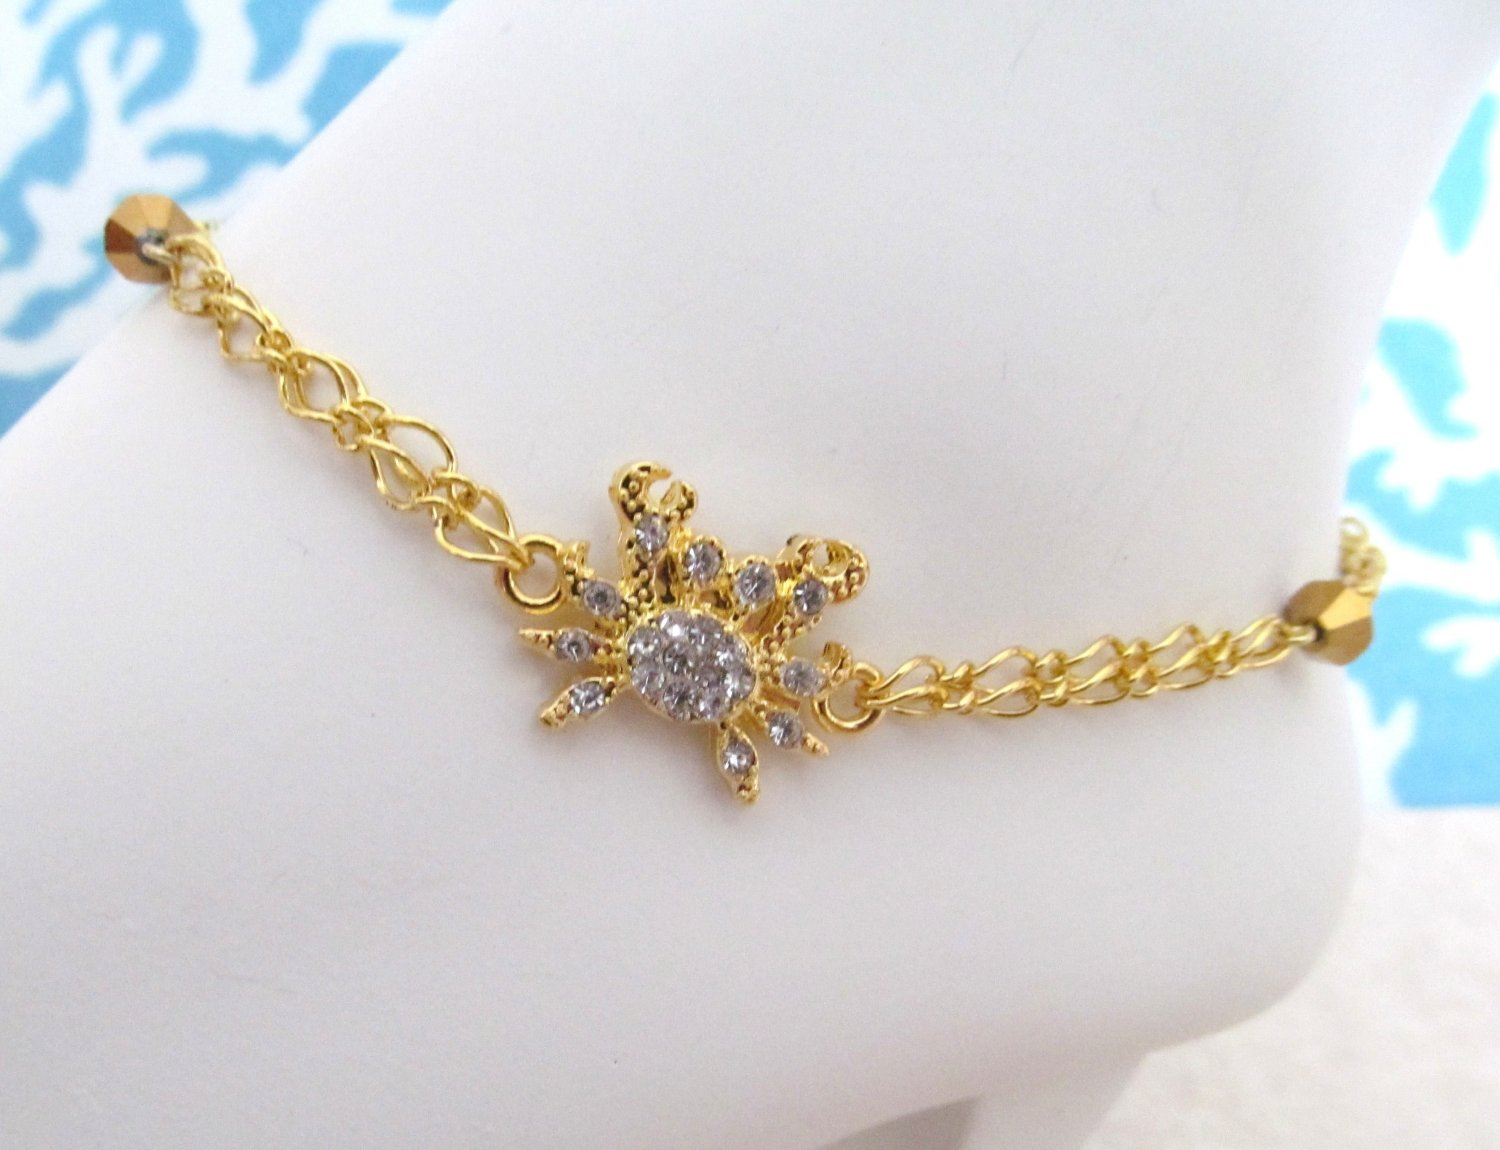 Anklet Rhinestone Sea Crab Goldplated, Tropical Anklet, Sea Life Anklet